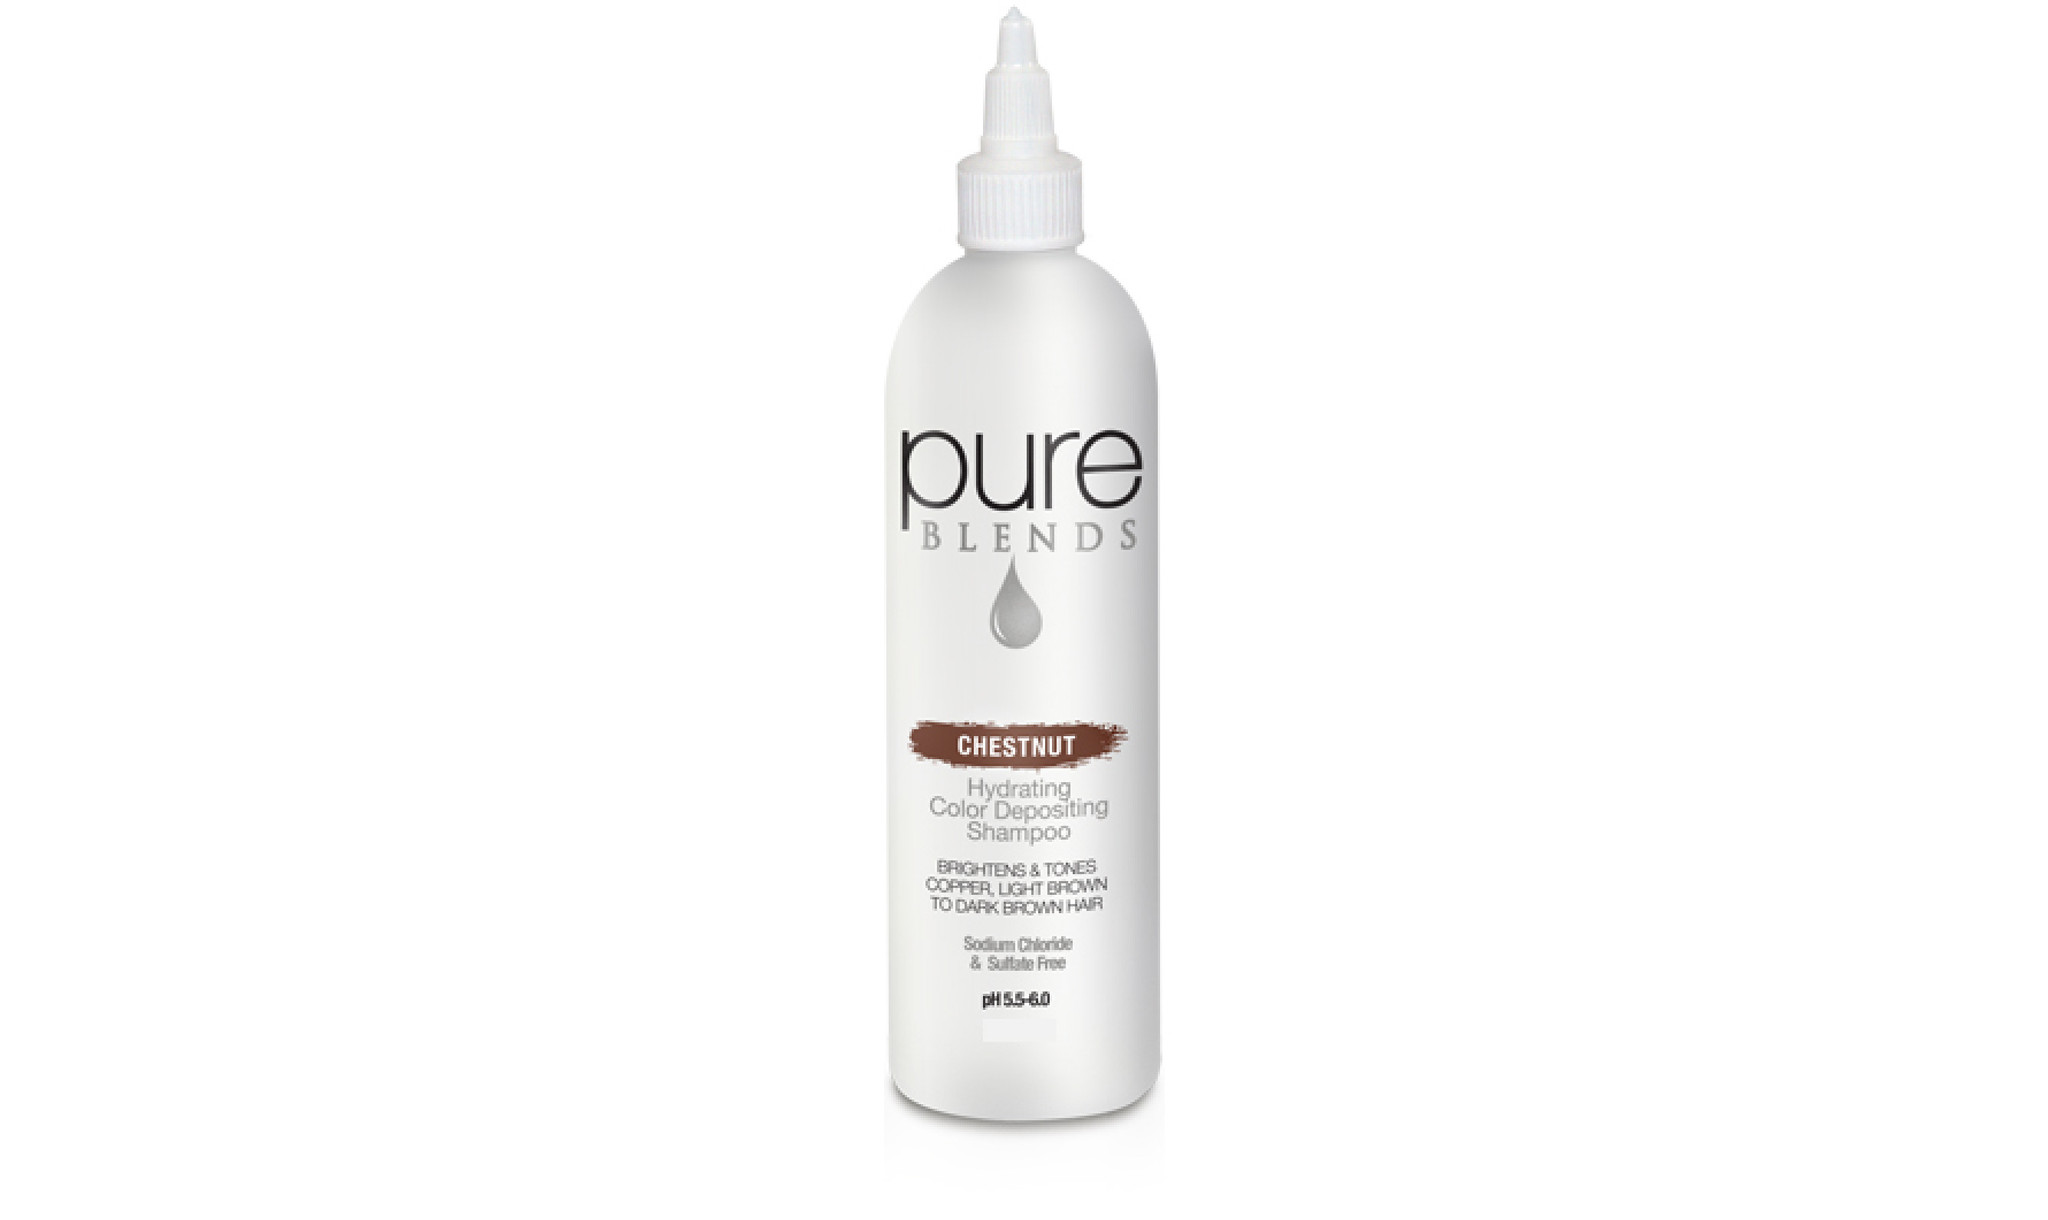 Pure Blends Colour Color Depositing Shampoo  cherry 120ml by Shop Salon Support - official distributor of Pure Blends Professional Hair Products, Colour Enhancing Shampoo, Colour Depositing Conditioner & Color Hair Shampoo Australia. Salon Support are Hair & Barber Barbershop Trade Wholesale Hairdressing Supplies Melbourne Australia